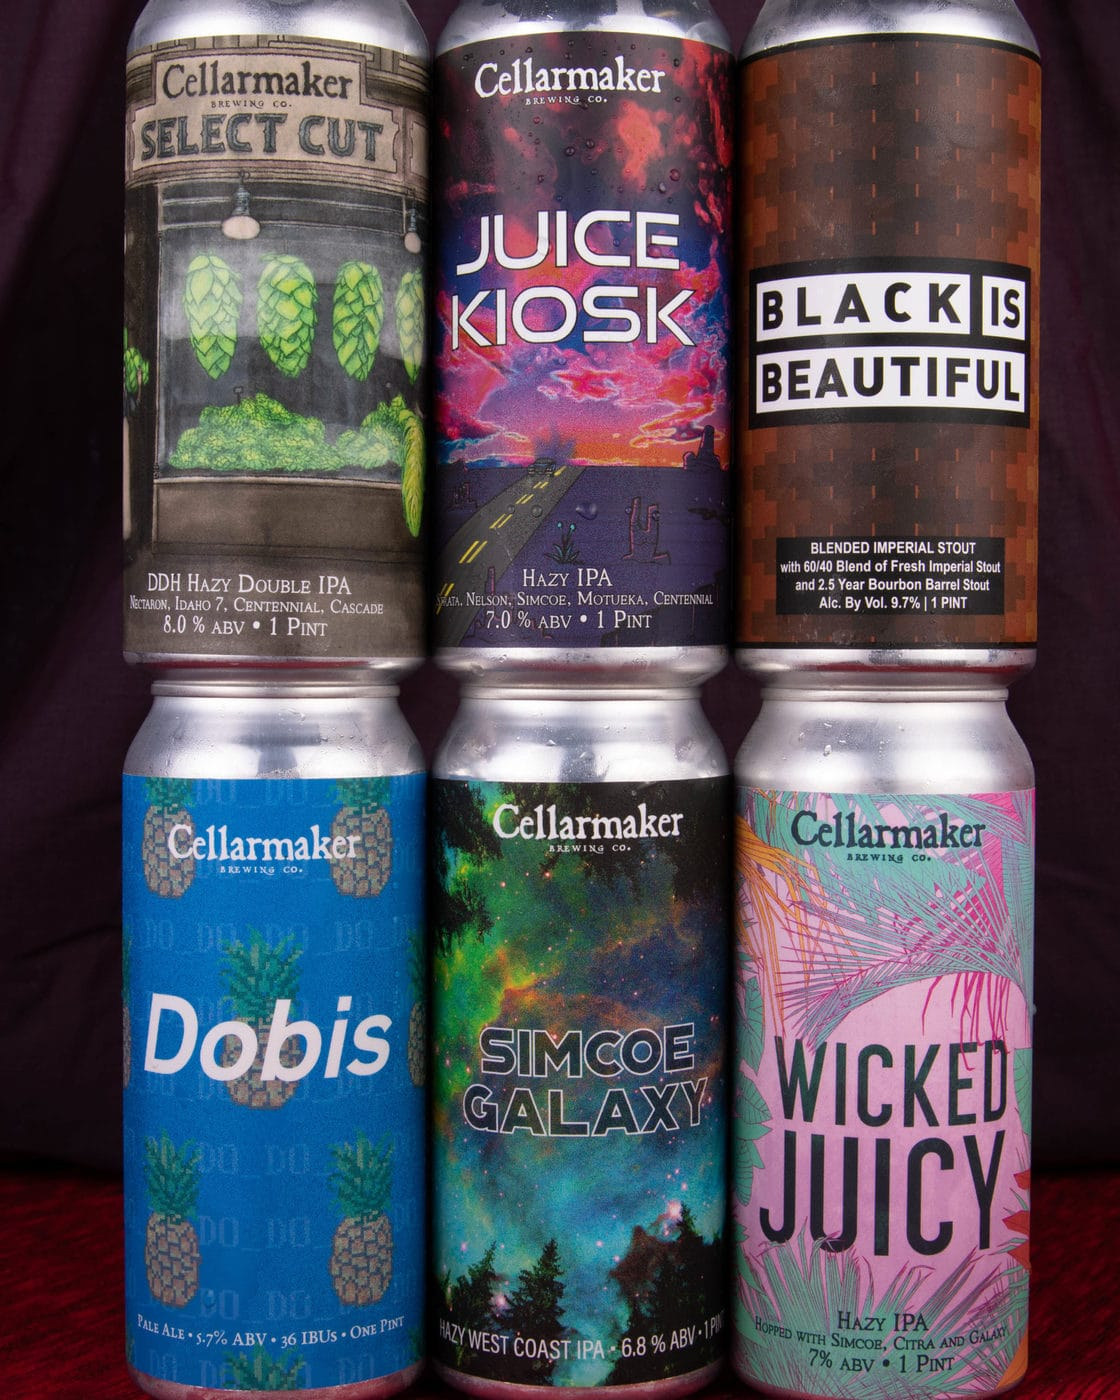 FULL CASE 24 CANS 6 BEER MIX – 4 Simcoe Galaxy IPA, 4 Dobis Pale Ale, 4 Juice Kiosk, 4 Select Cut DIPA, 4 Wicked Juicy IPA And 4 Black Is Beautiful Blended Stout – Shipping Out Wednesday 7/28 For Next Day Delivery*